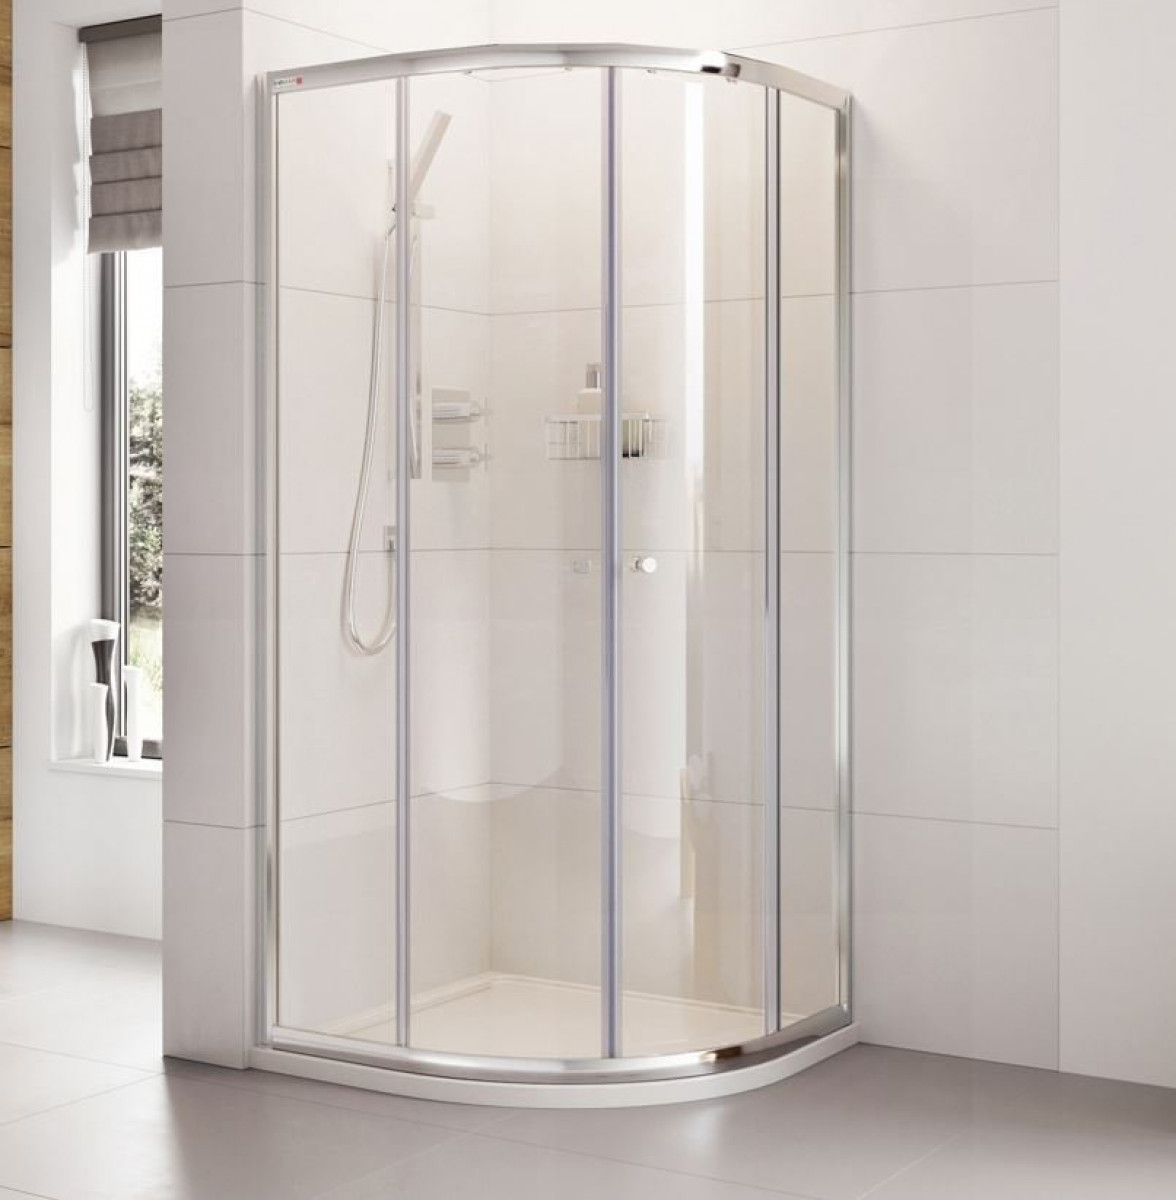 Haven 900mm Quadrant Shower Enclosure H3q9cs